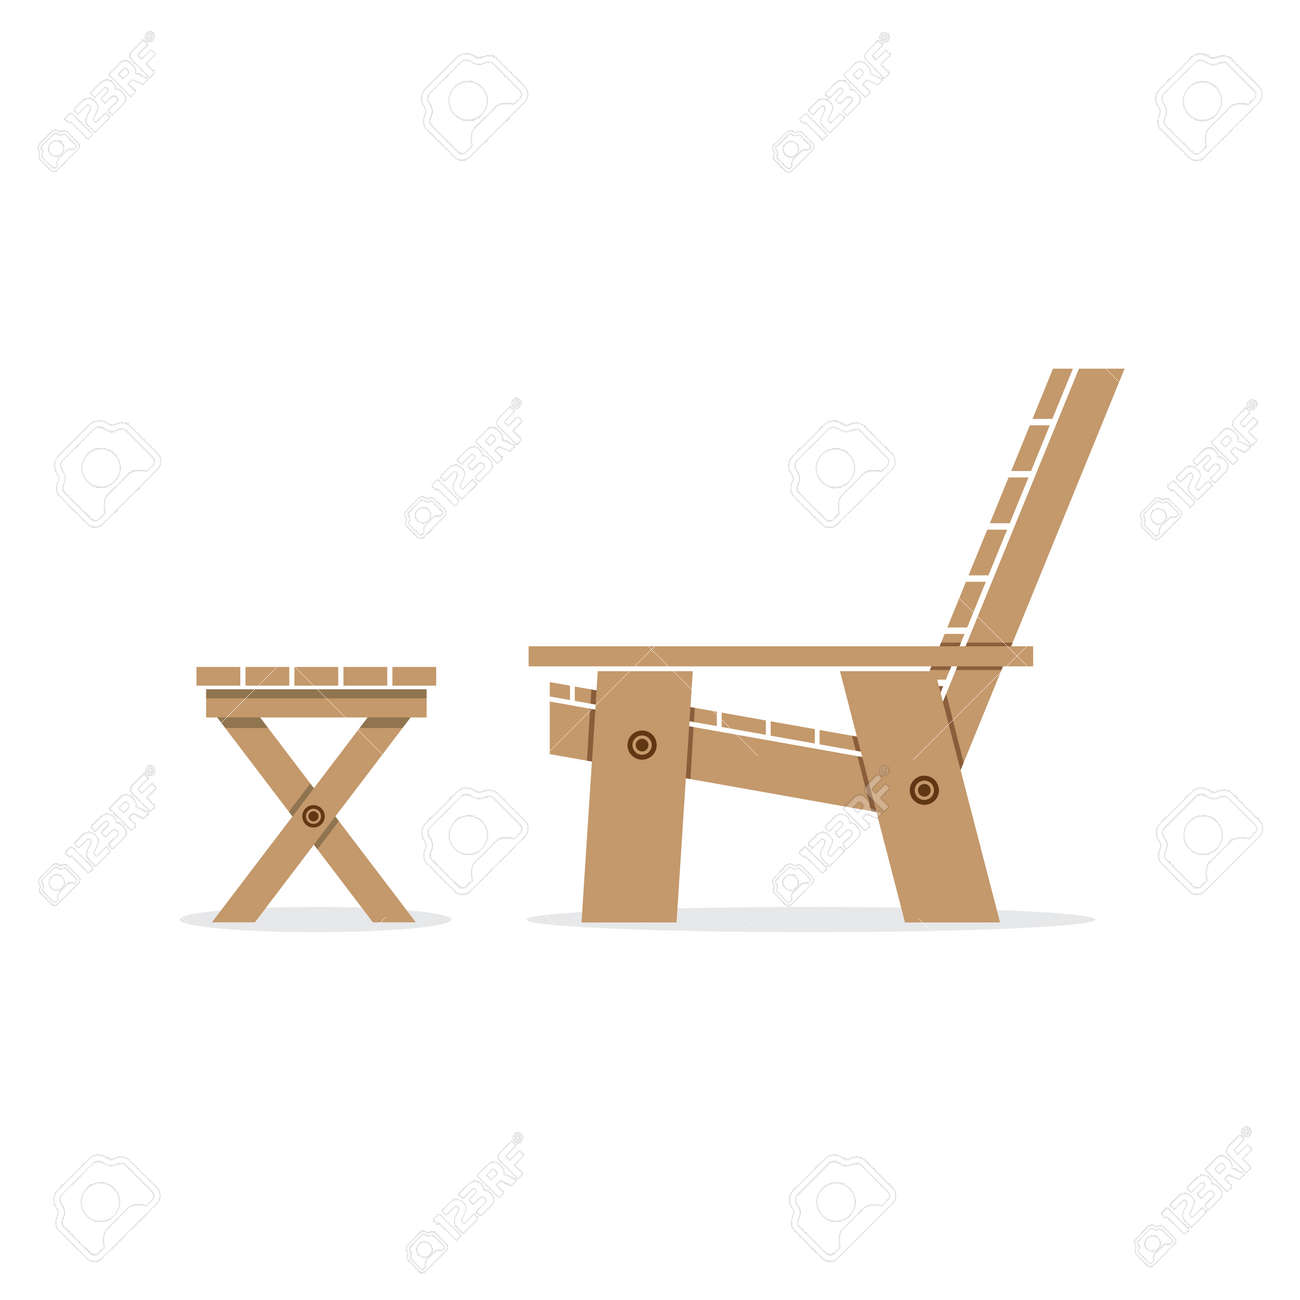 Wooden Chair Side View